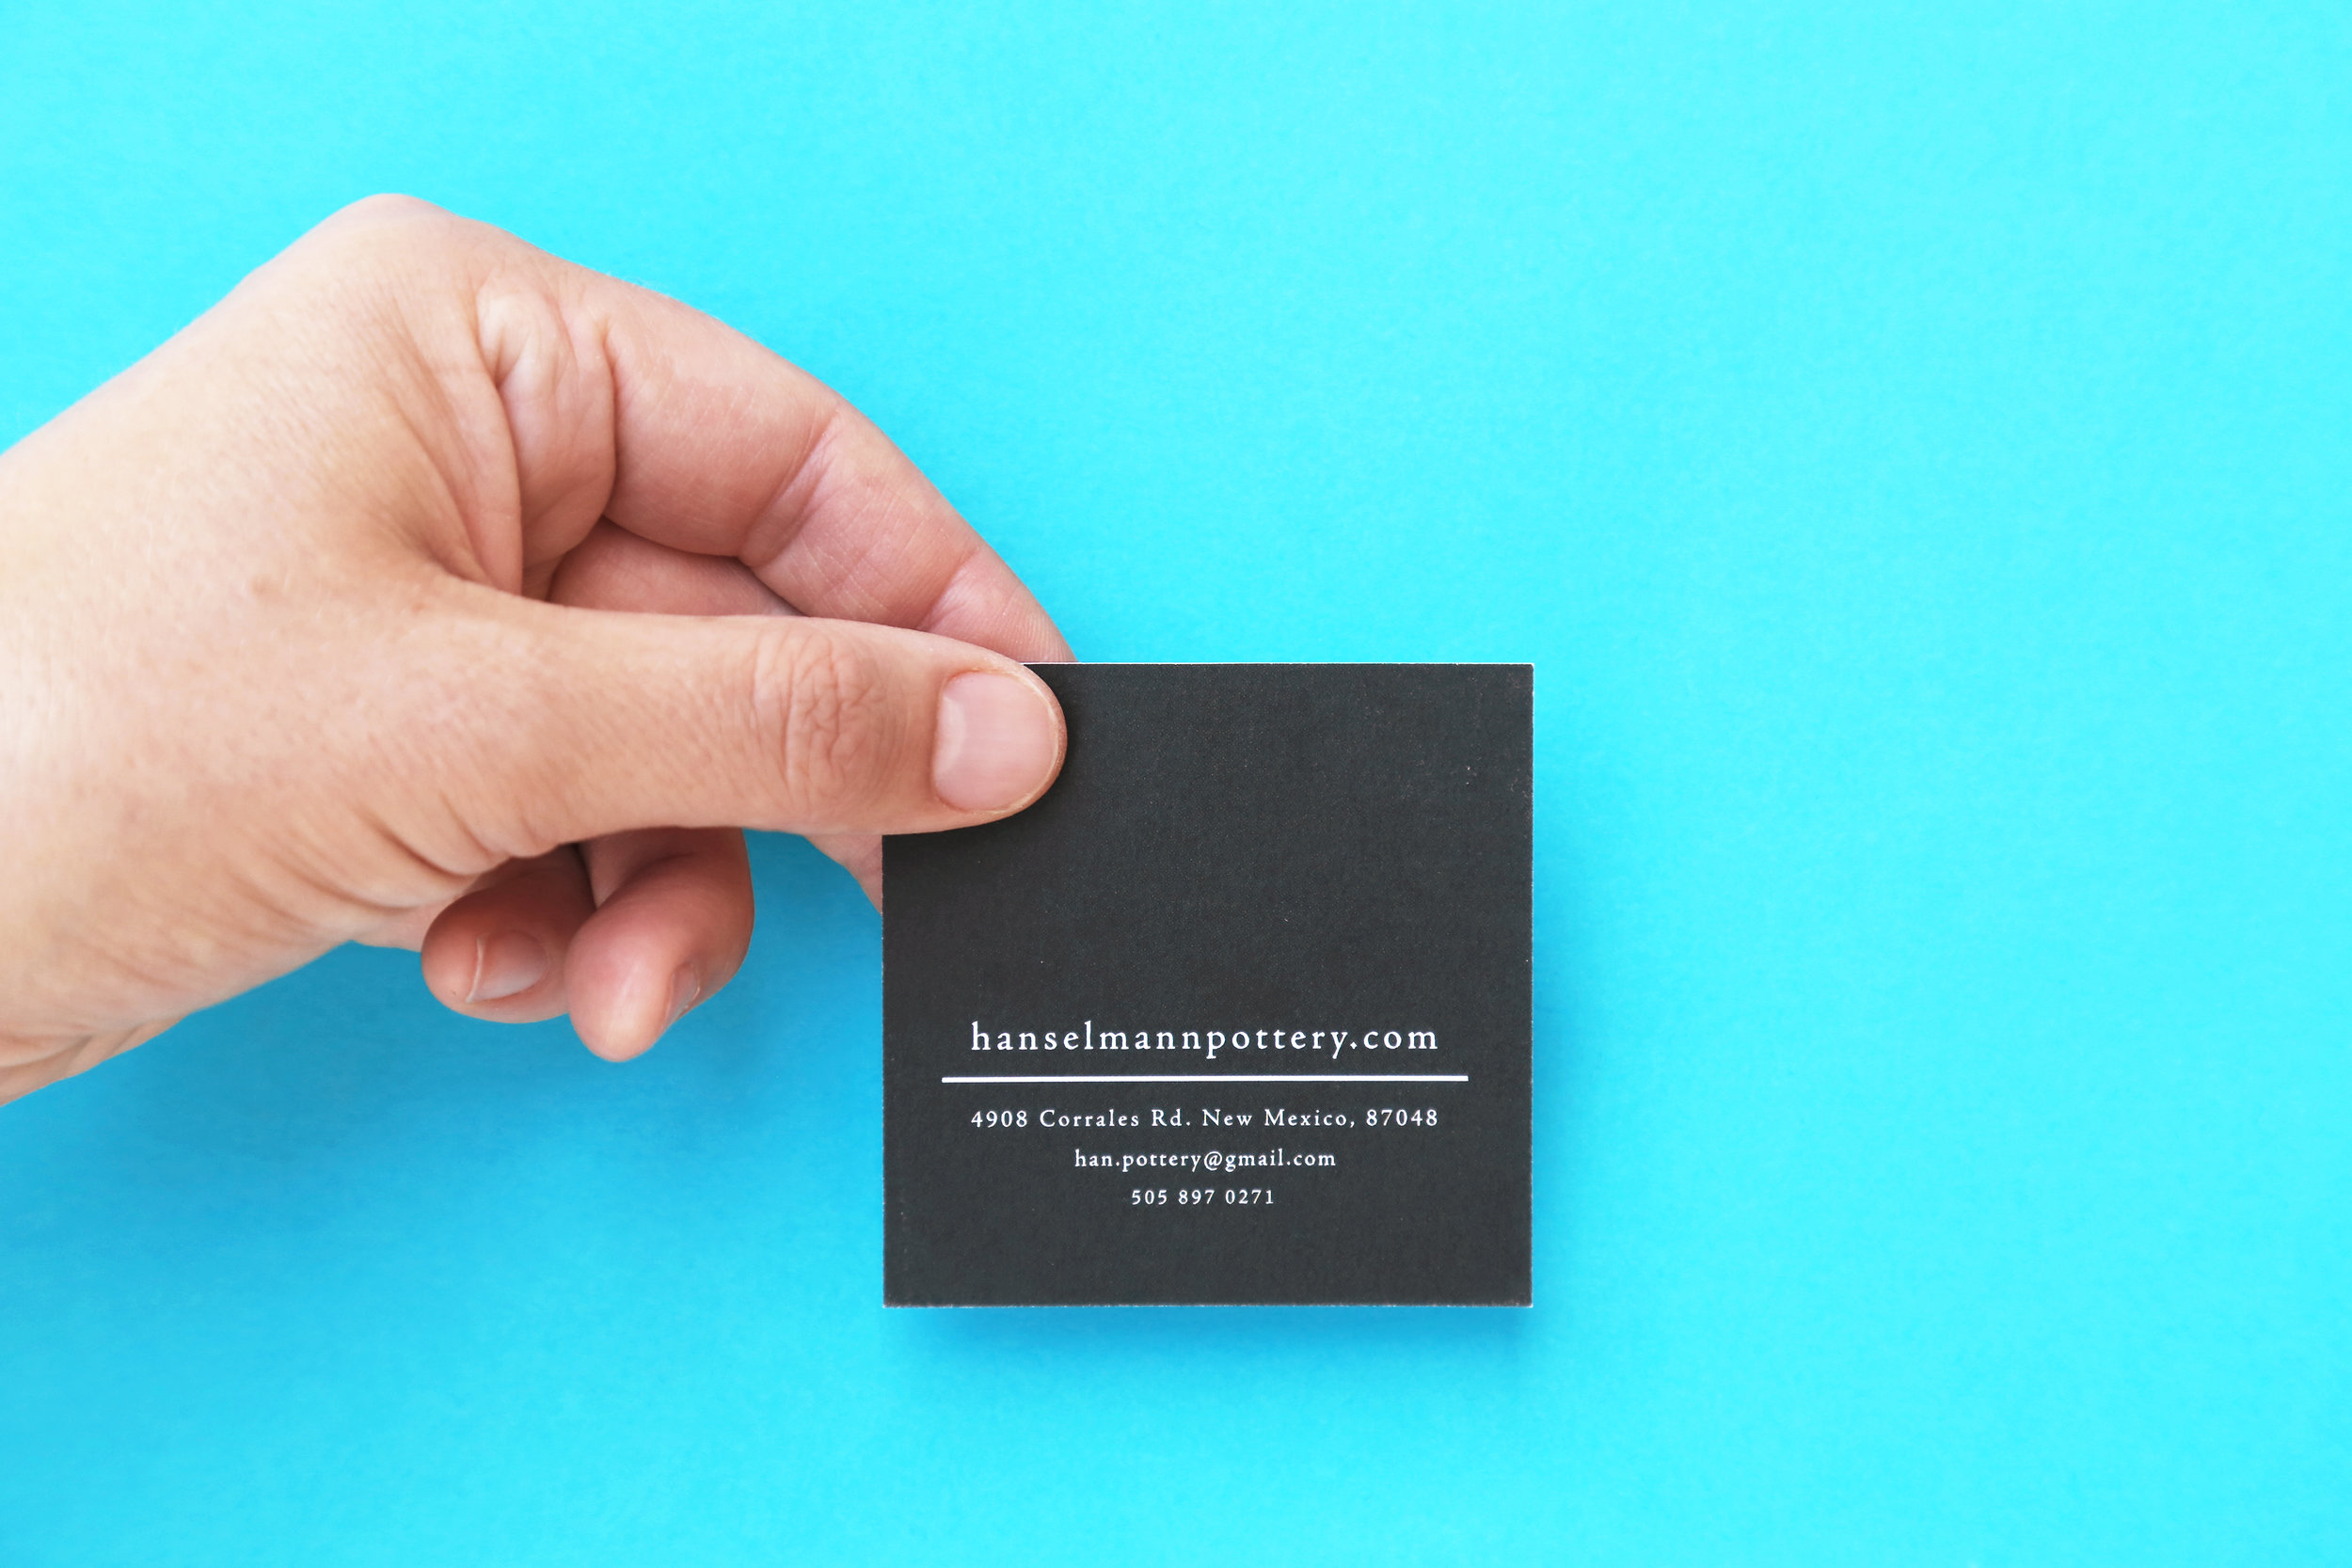 BUSINESSCARD-11.jpg